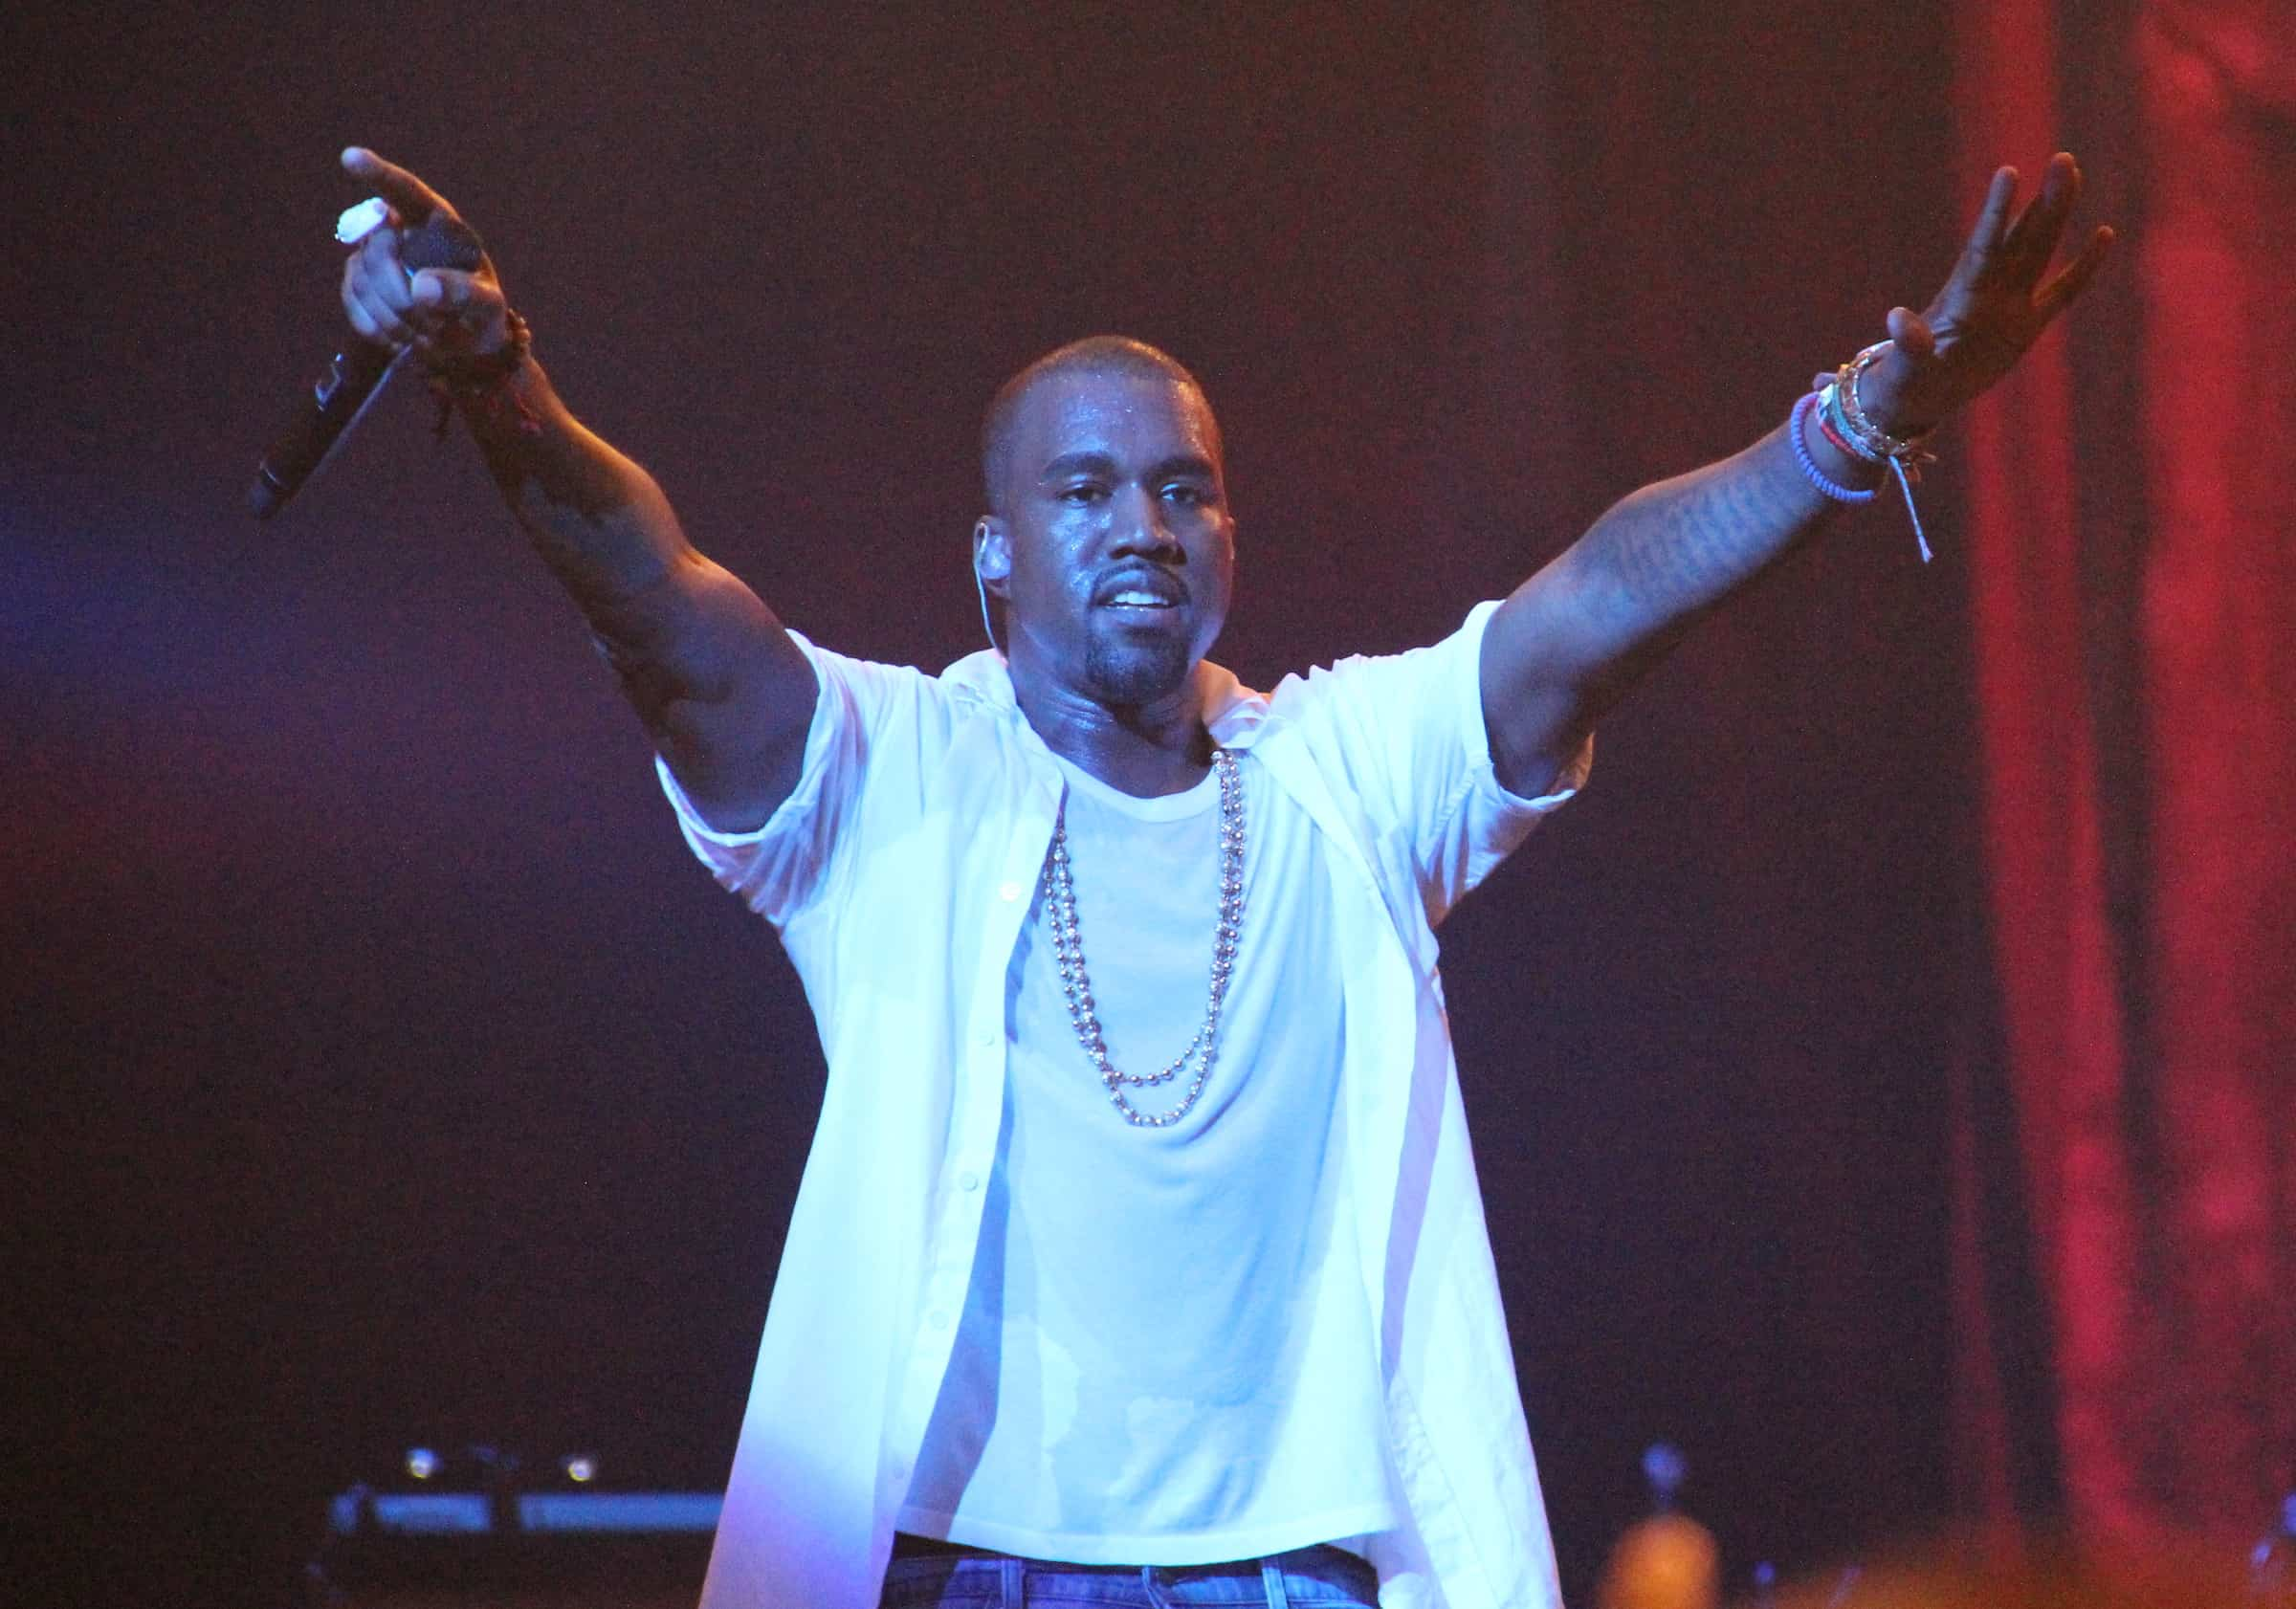 Kanye West's new album Ye drops today on Apple Music (and elsewhere).